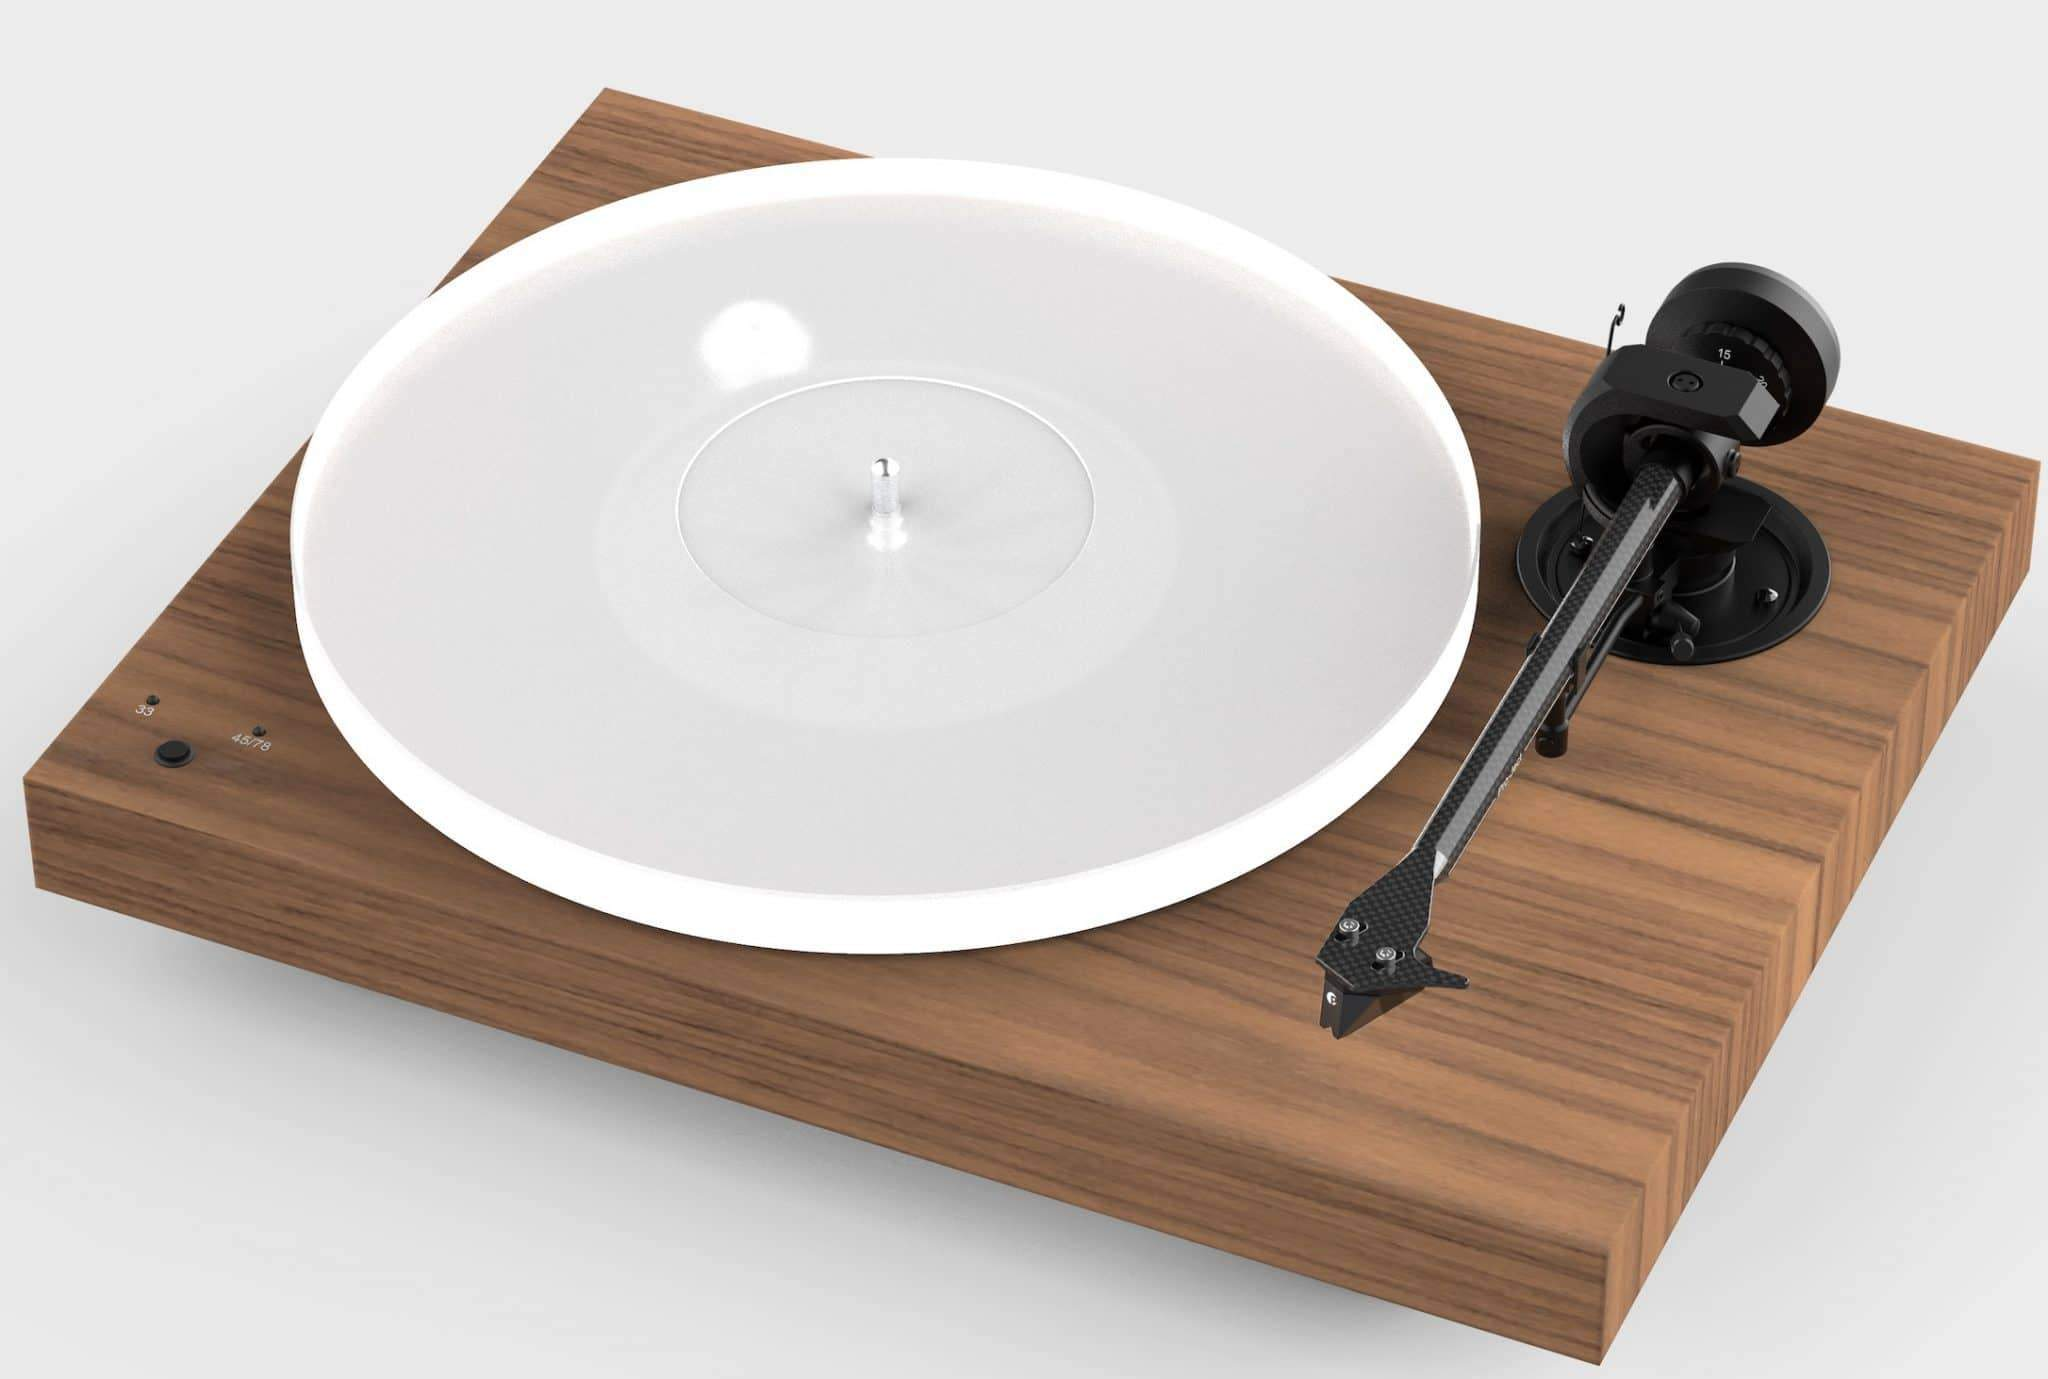 pro ject x1 turntable walnut project audio systems SmartHouse Best Of The Best Awards 2020: Soundbars, Speakers, And Turntables